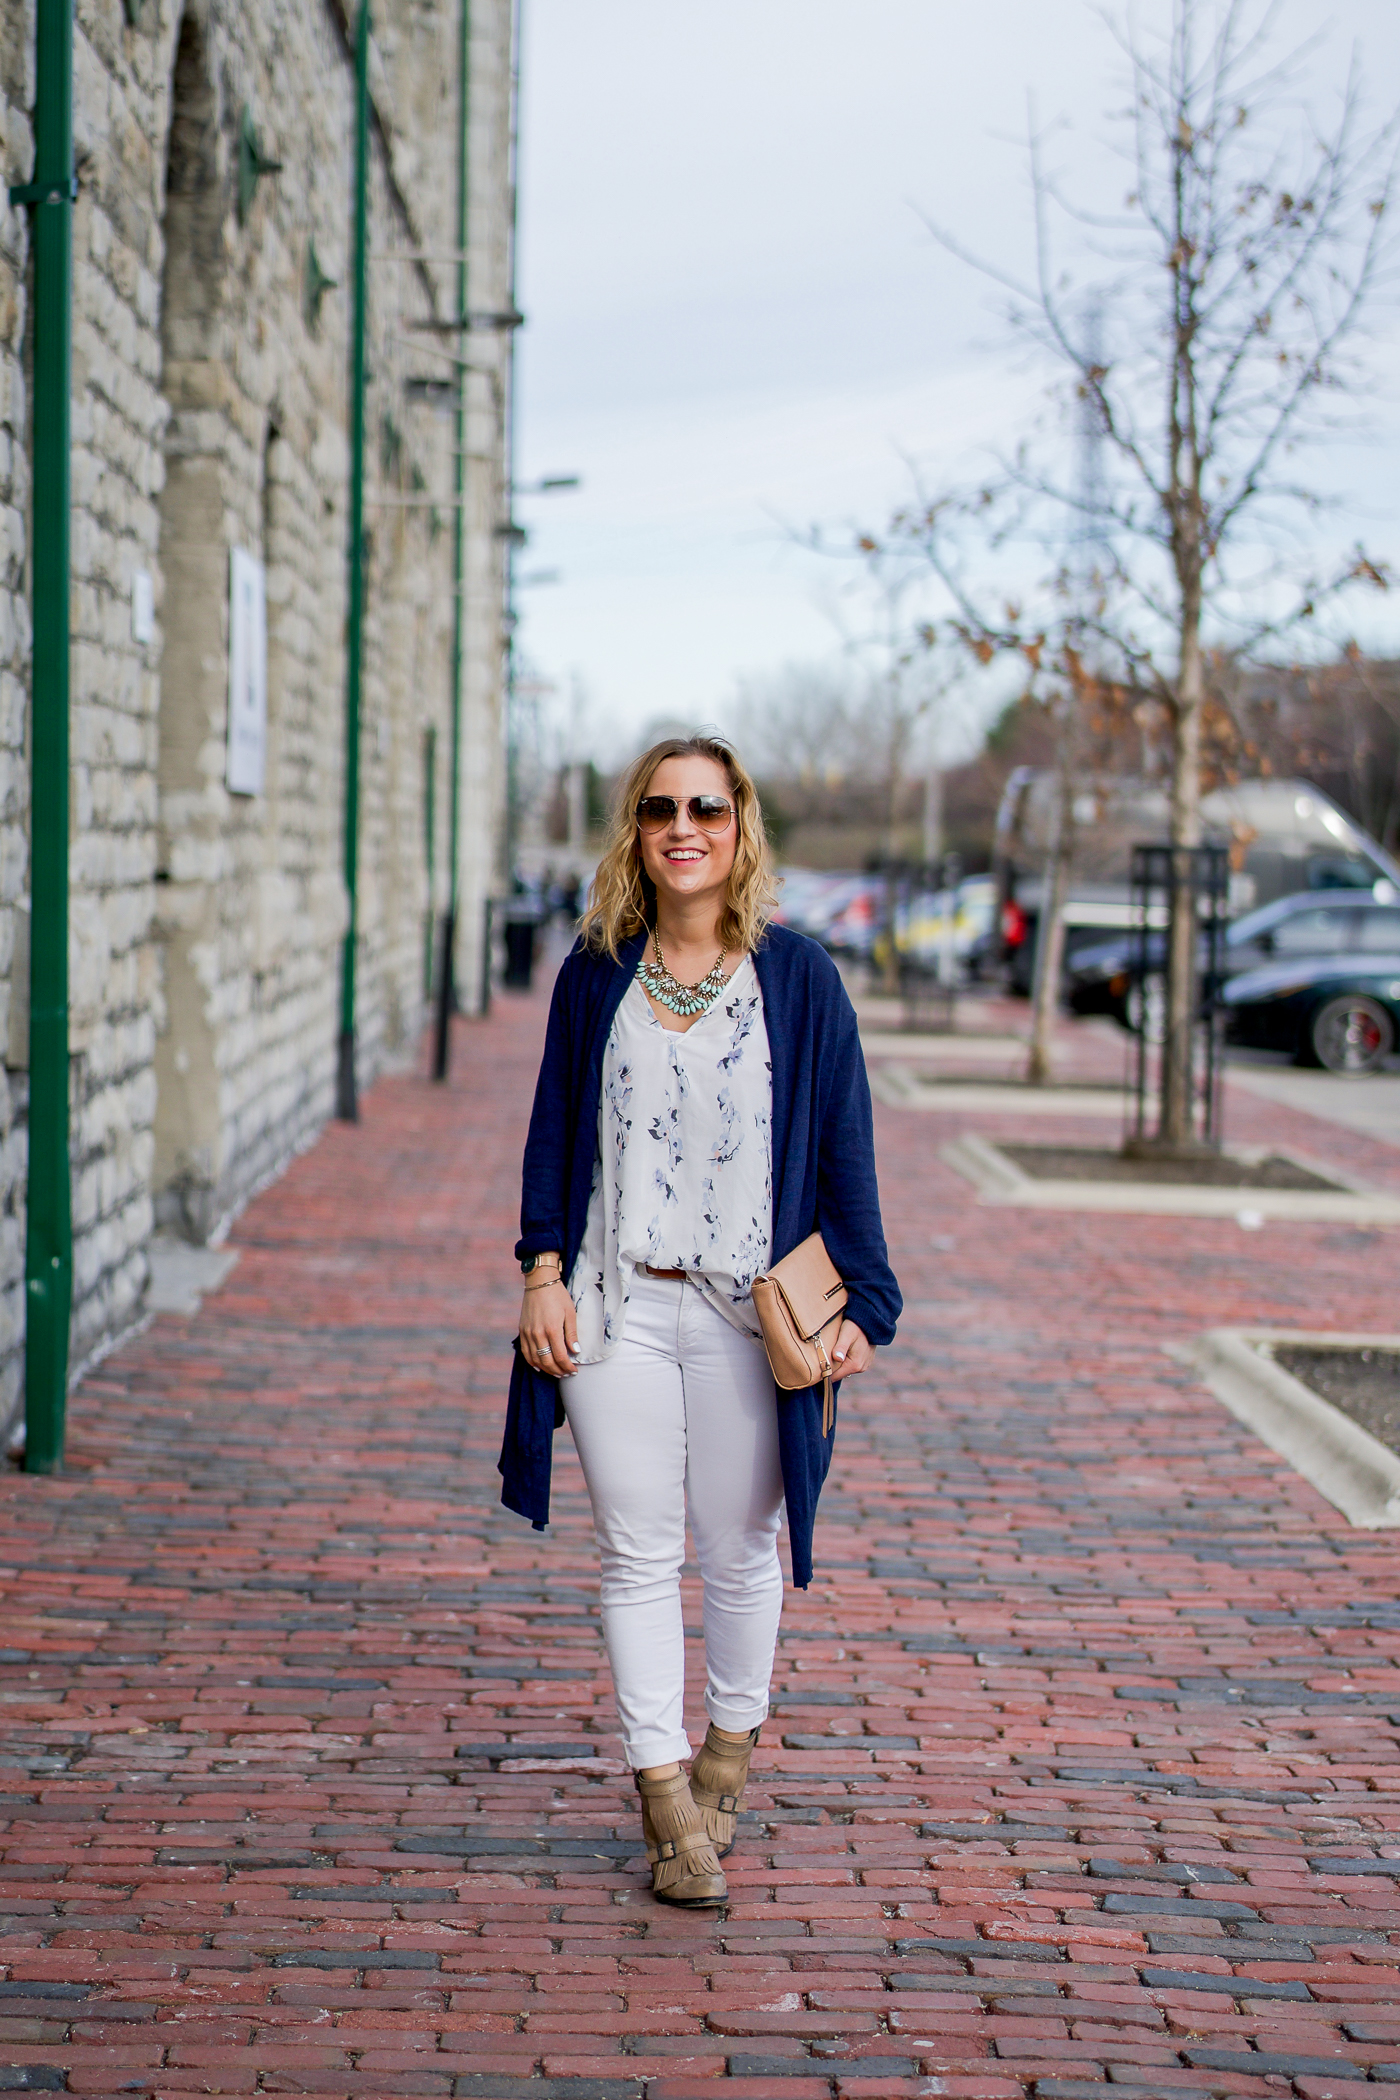 Canadian fashion blogger, Jackie of Something About That, wearing a spring outfit with white jeans and a white floral top from Gentle Fawn